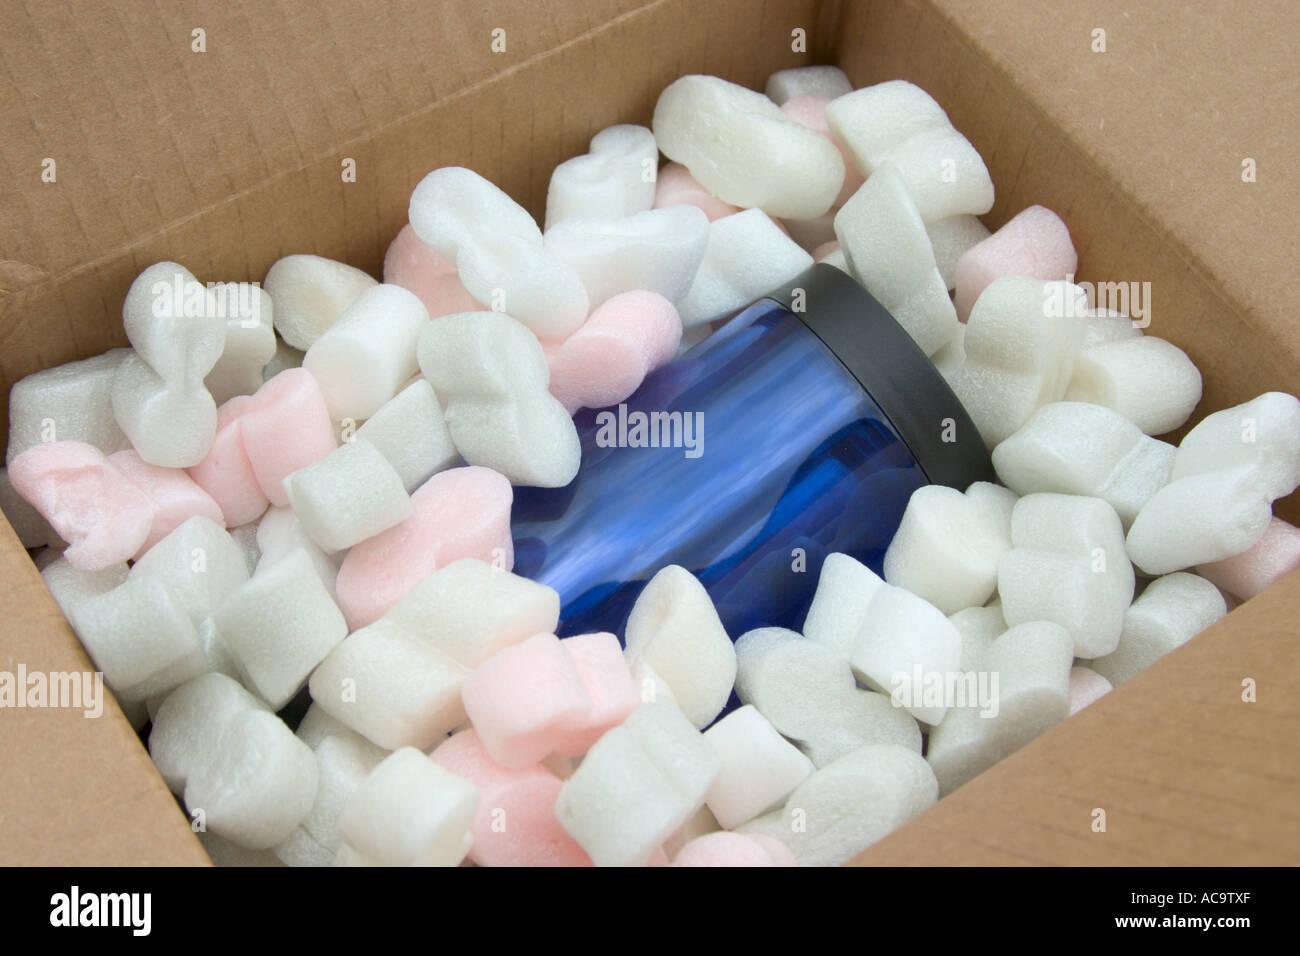 Styrofoam Stock Photos & Styrofoam Stock Images - Alamy